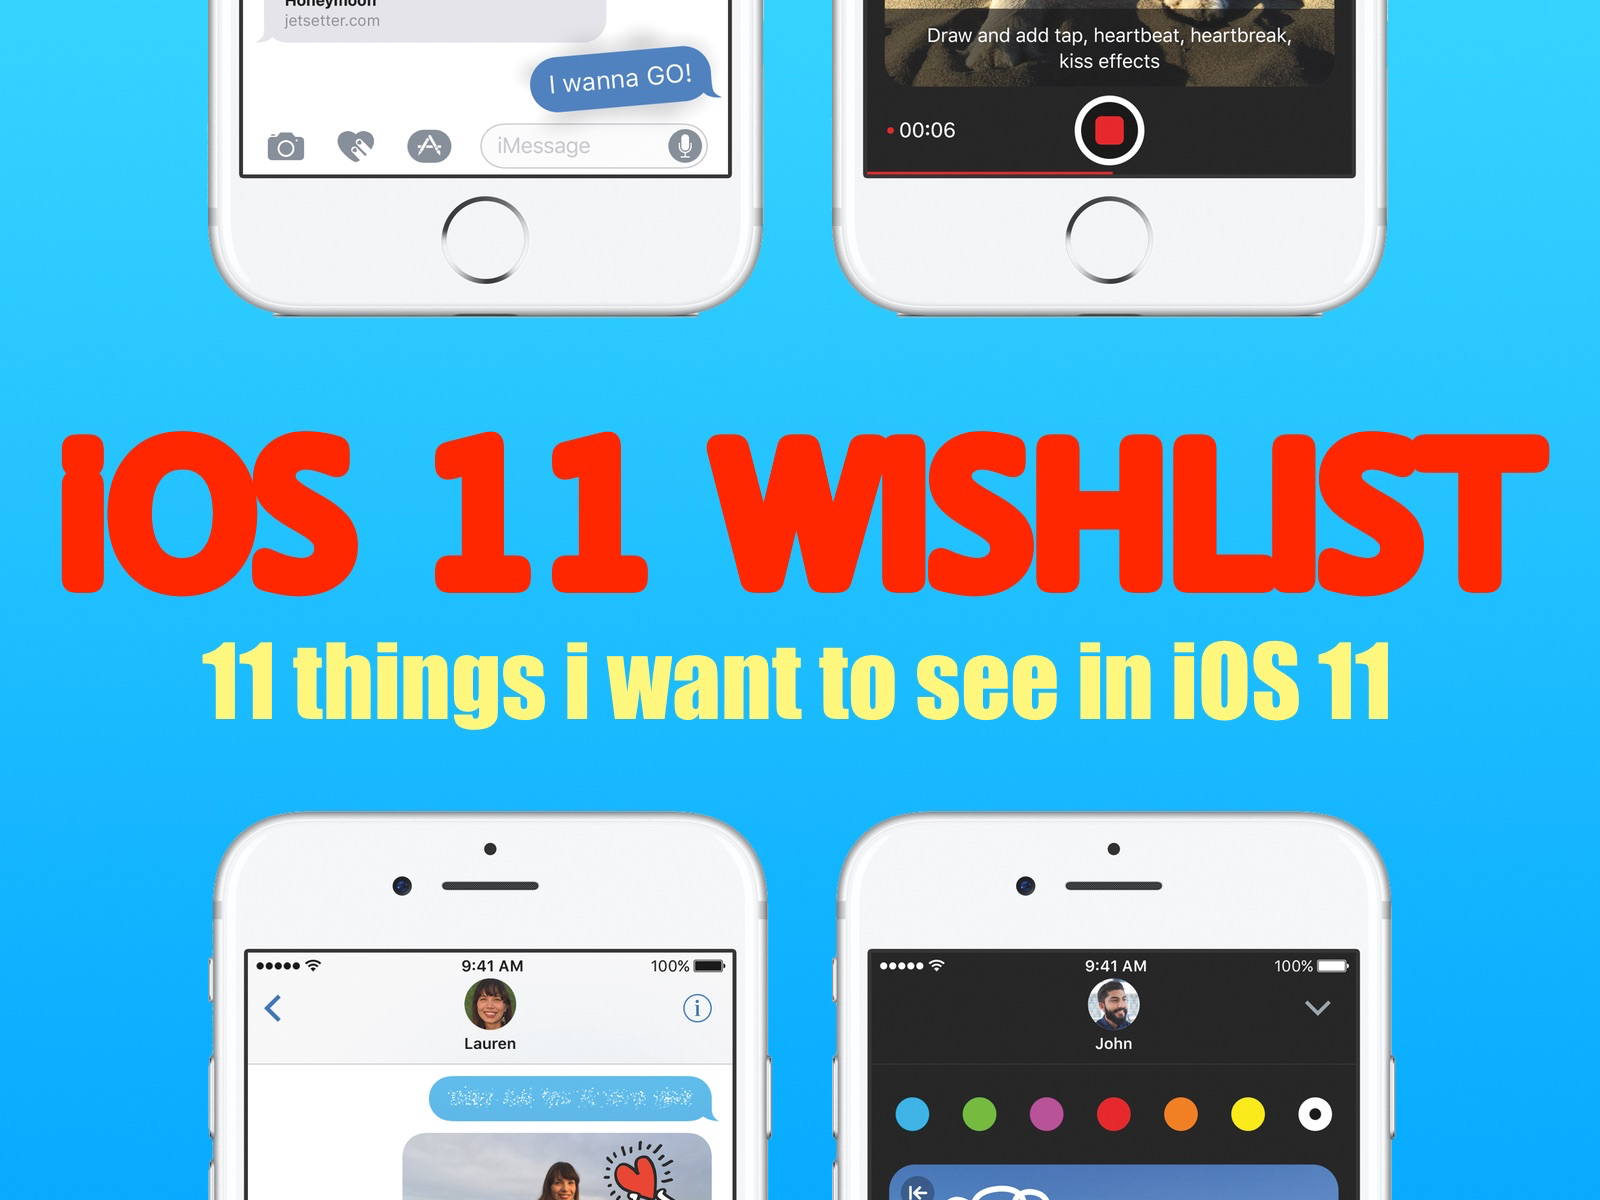 iOS 11 Wishlist - 11 things i want to see in iOS 11